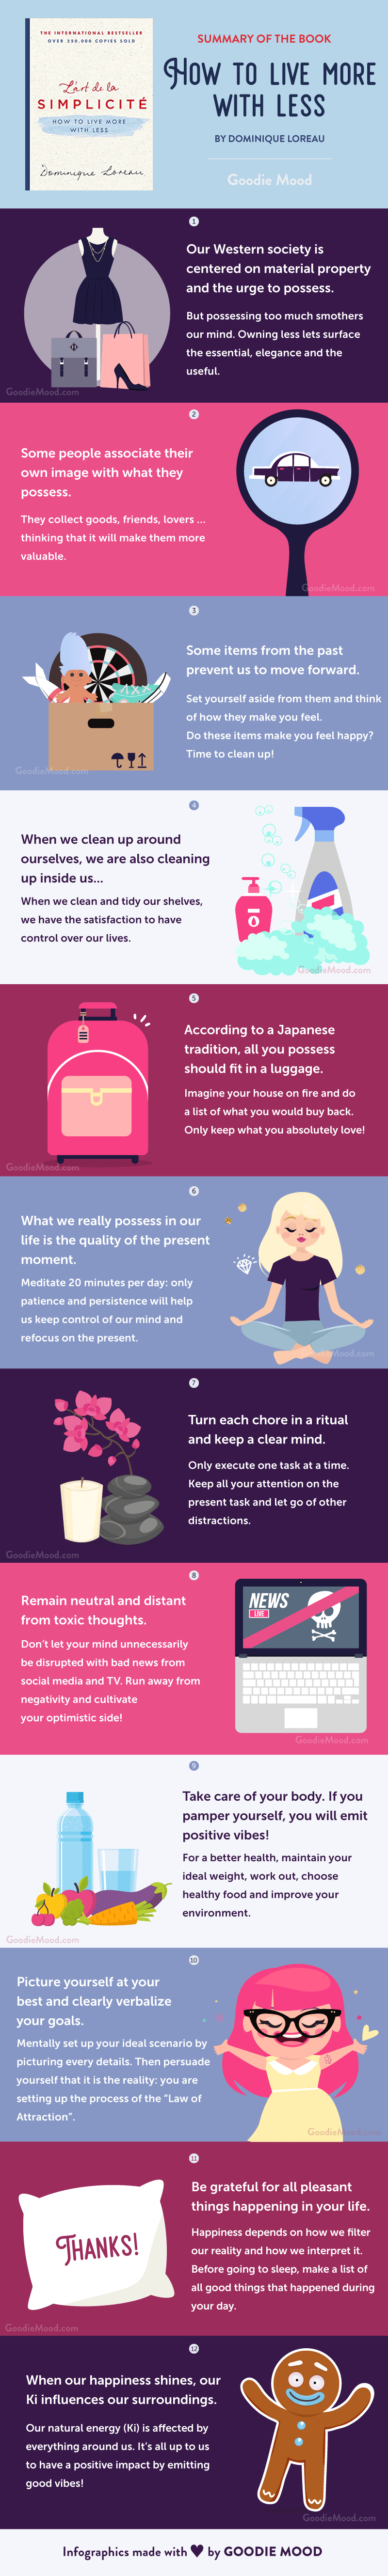 """Summary of the book """"How to live more with less"""" by Dominique Loreau - infographics"""